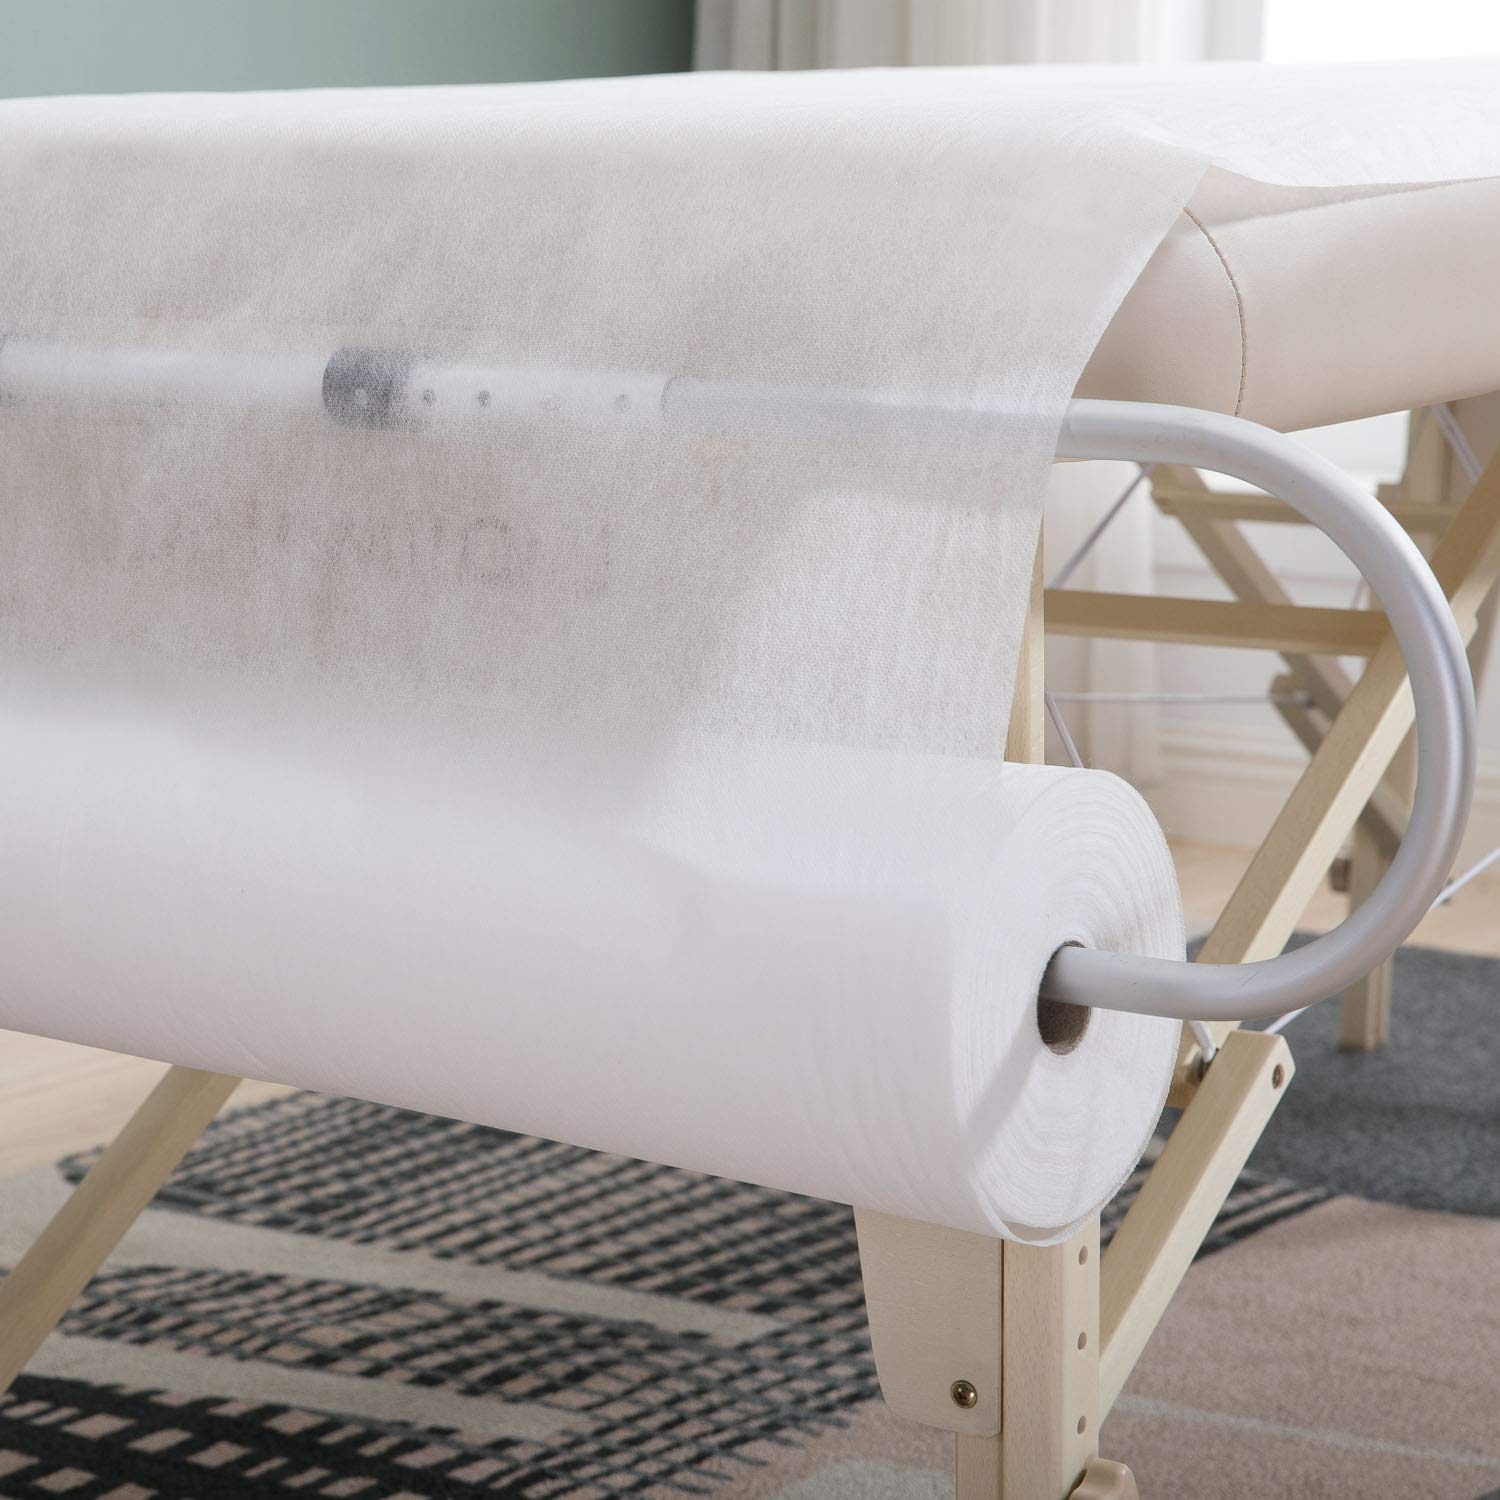 """DR.LOMILOMI Disposable Non-woven Perforated Cover Sheet Roll (W31.5"""" X L71"""") for Massage Table (1 Roll) : Beauty"""